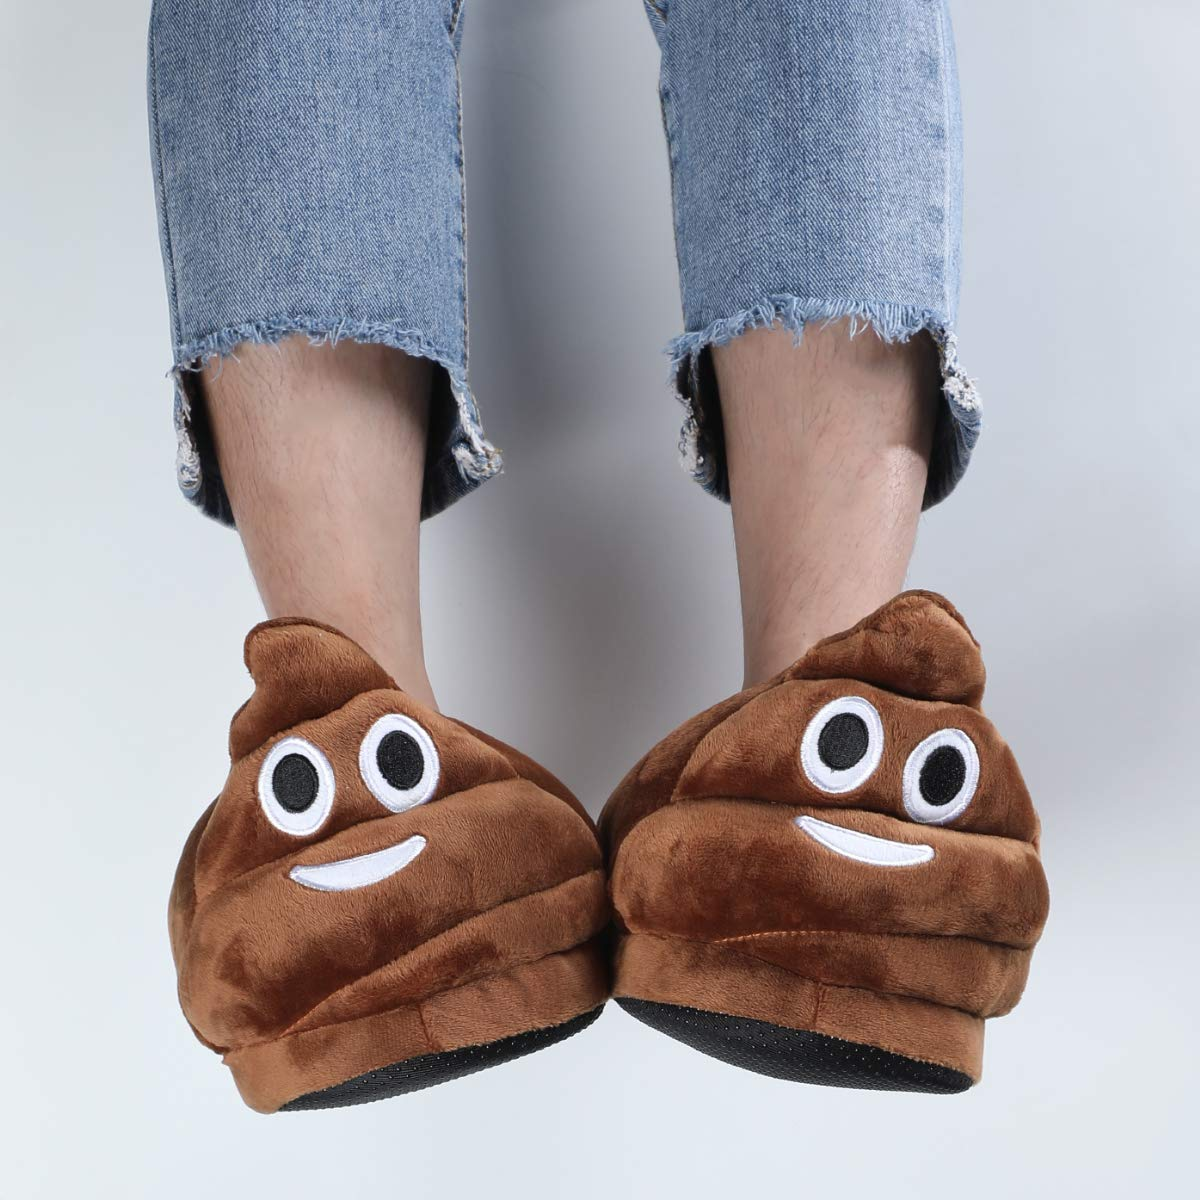 Warm and Comfortable Cute House Shoes for Indoor or Outdoor Unisex Emoticons Slippers Plush Fluffy Cotton Slippers